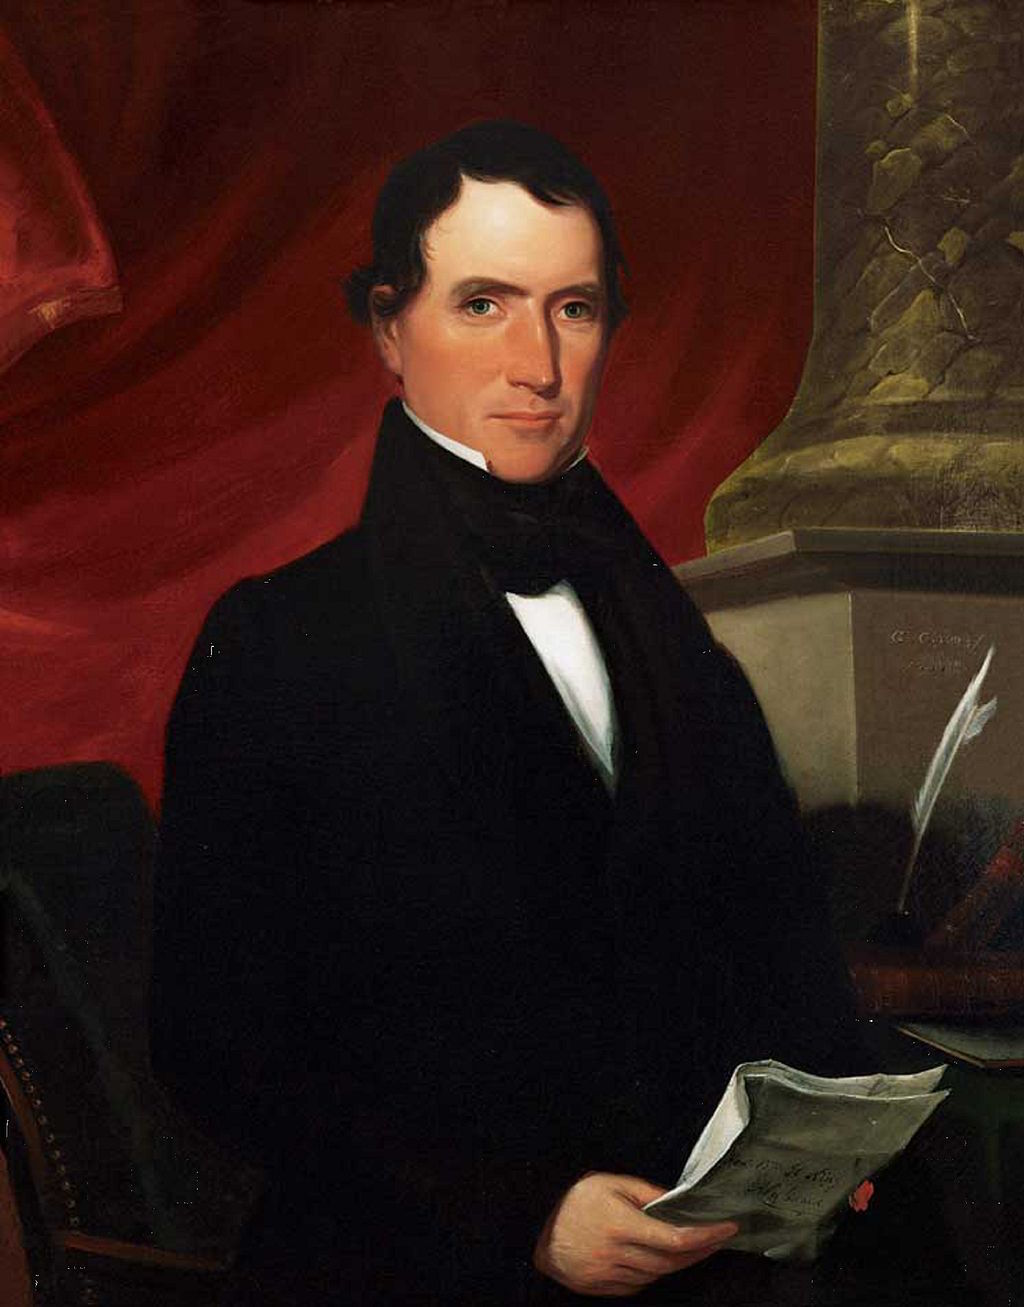 Vice President William R. King